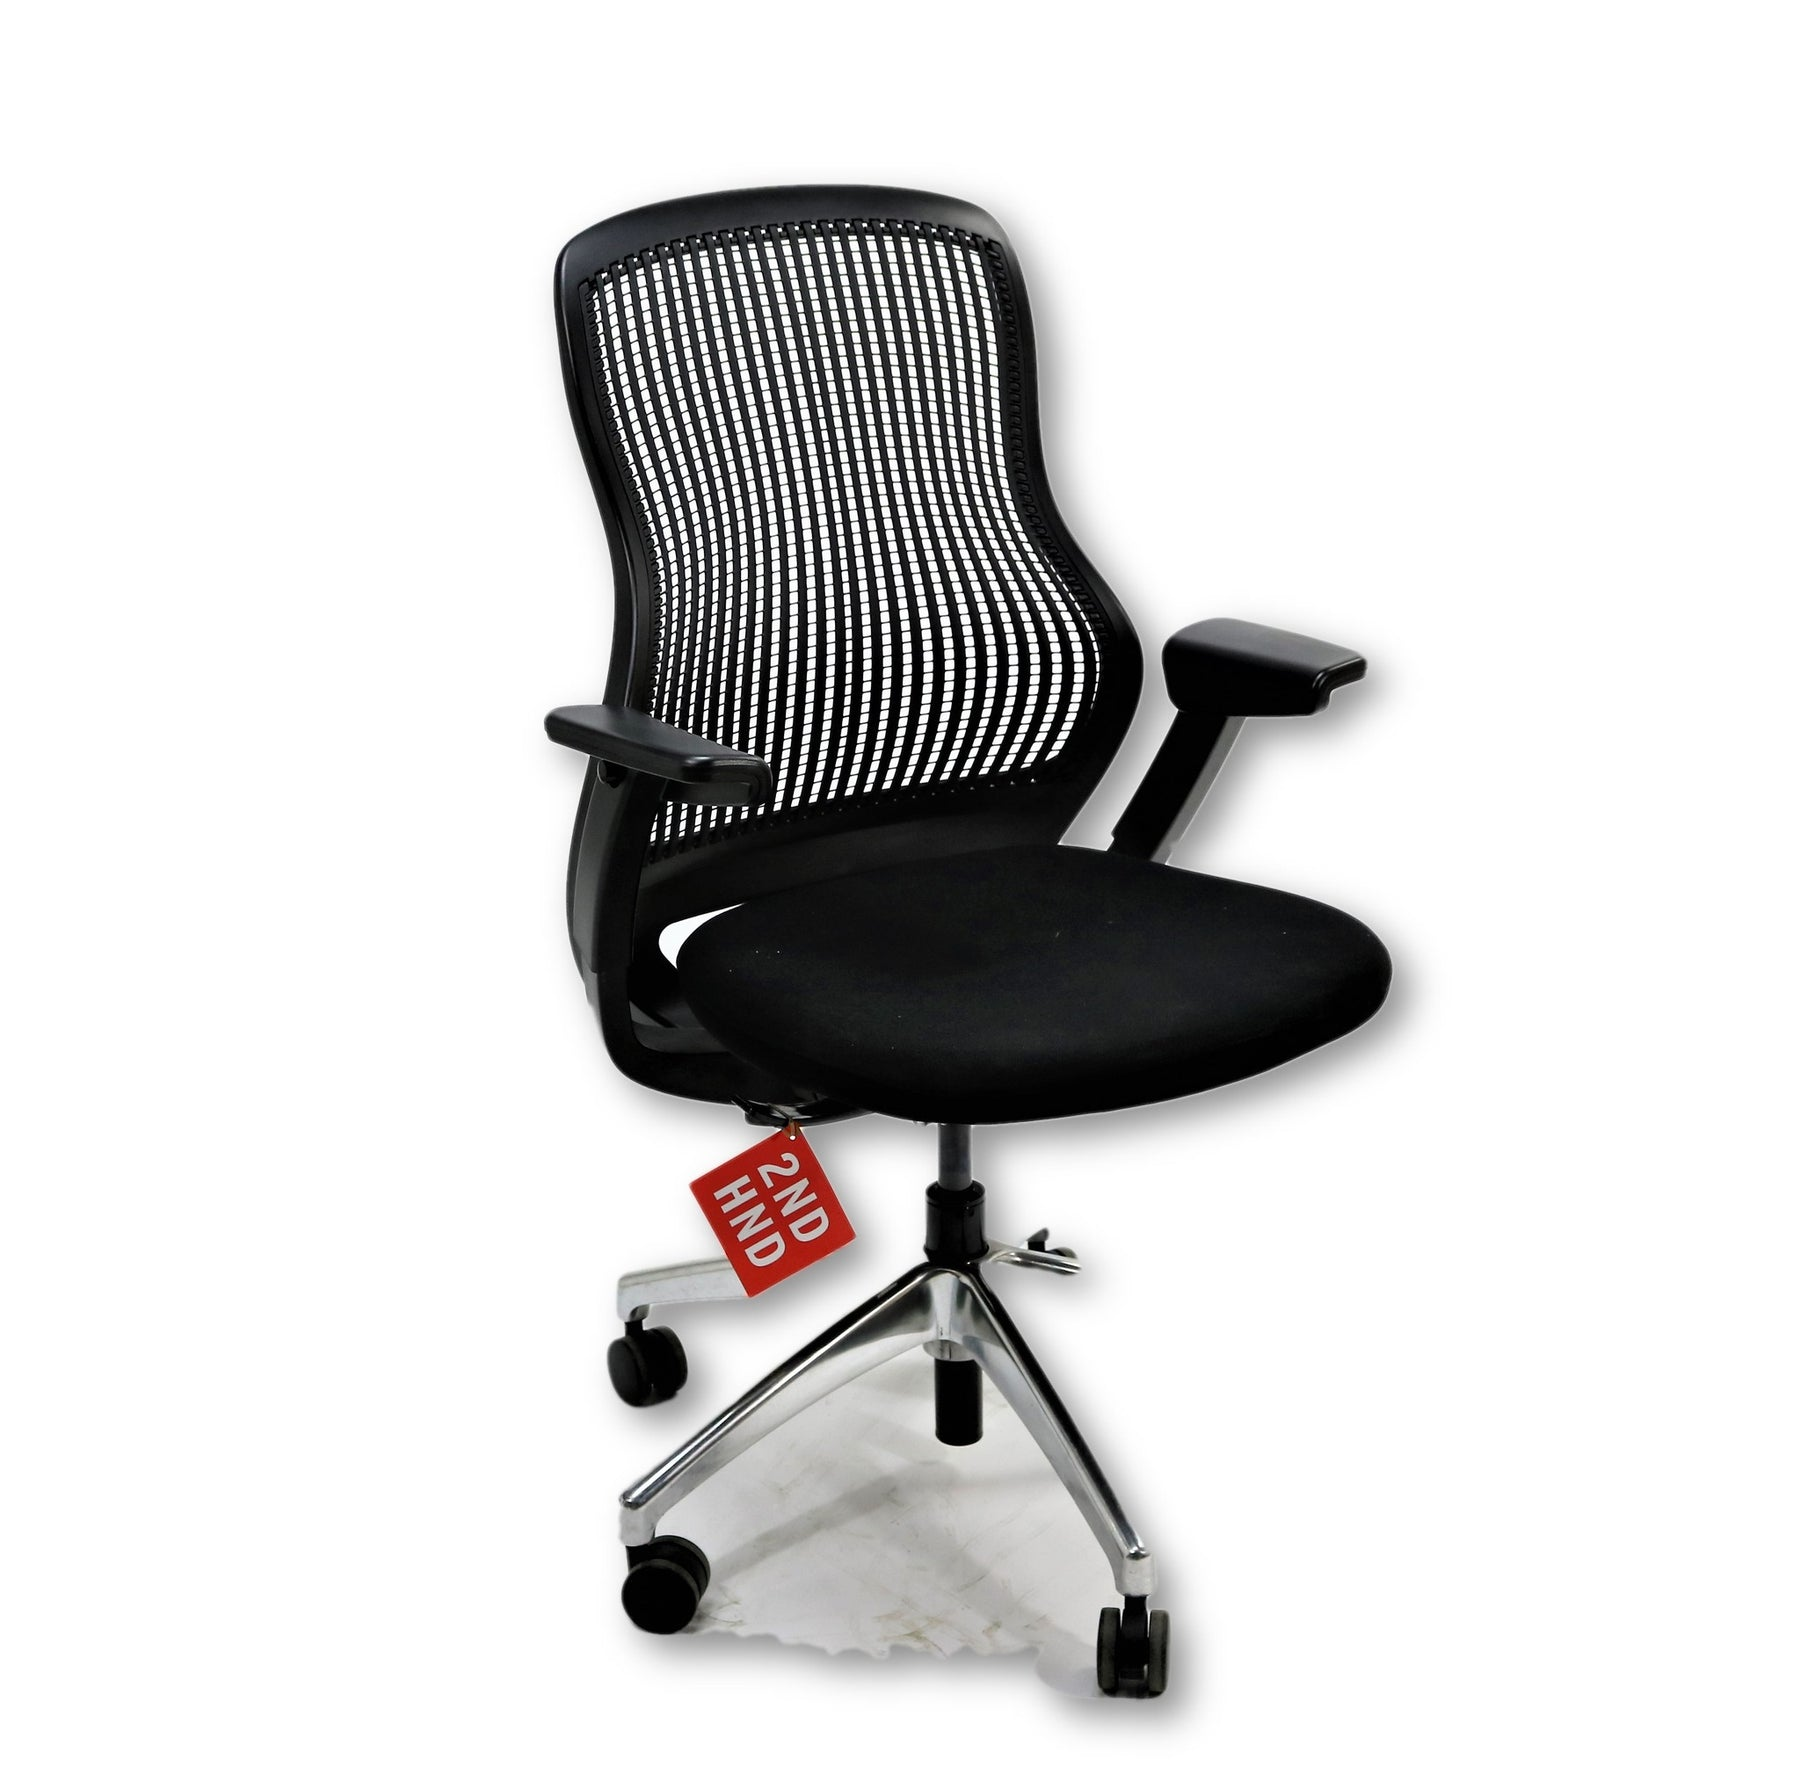 RE Generation Office Chair by Knoll